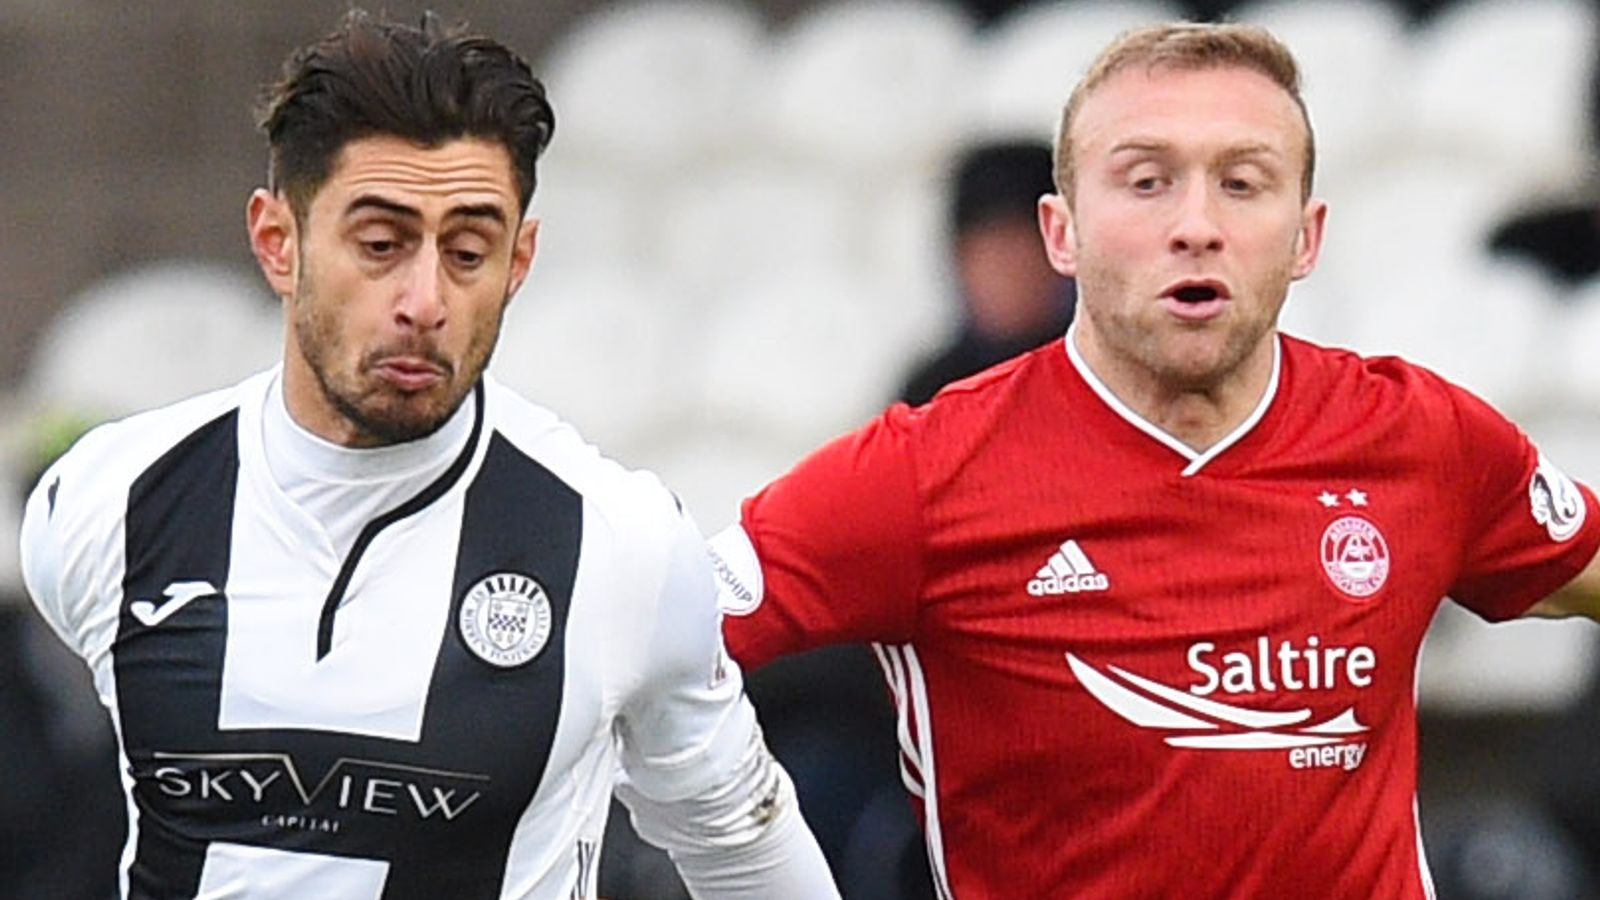 St Mirren 0-0 Aberdeen: Obika goes closest in dull stalemate